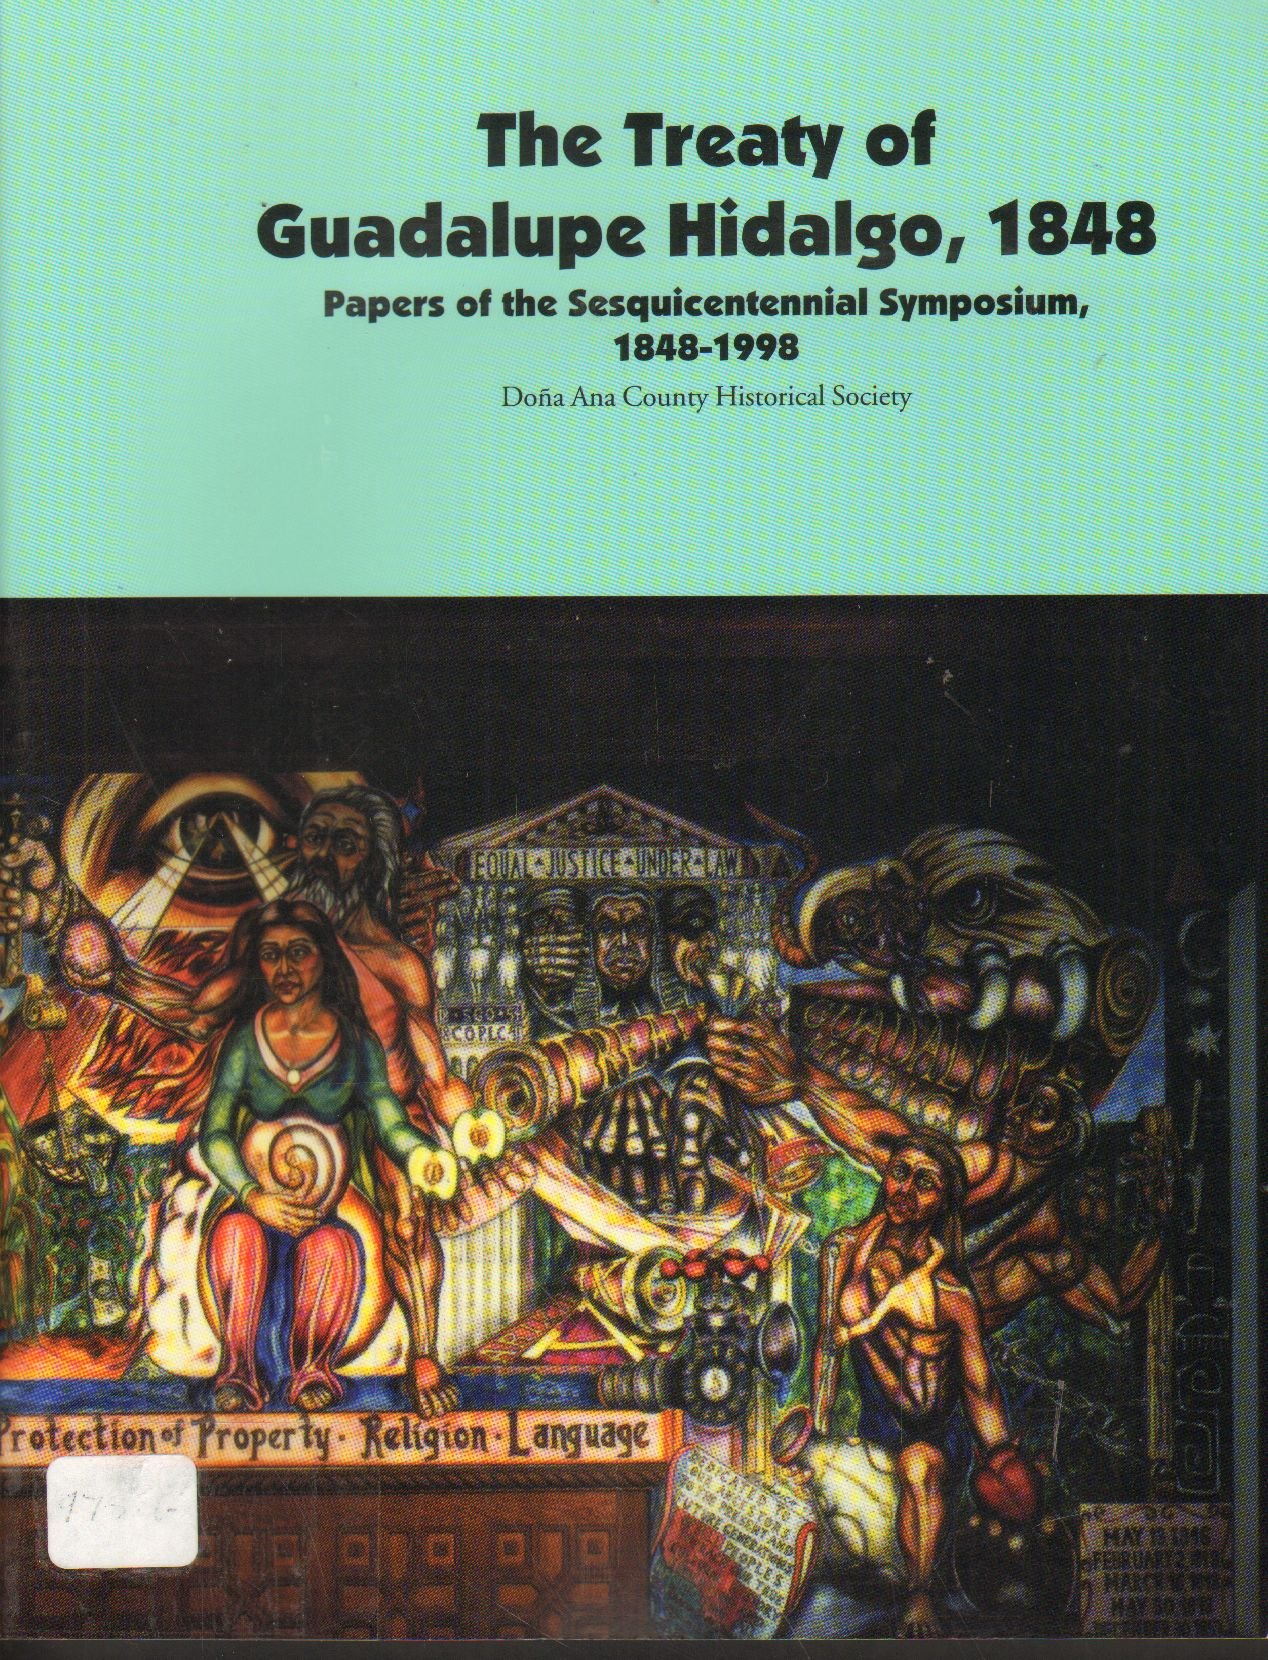 The Treaty of Guadalupe Hidalgo, 1848: Paper of the Sesquicentennial Symposium, 1848-1998 PDF